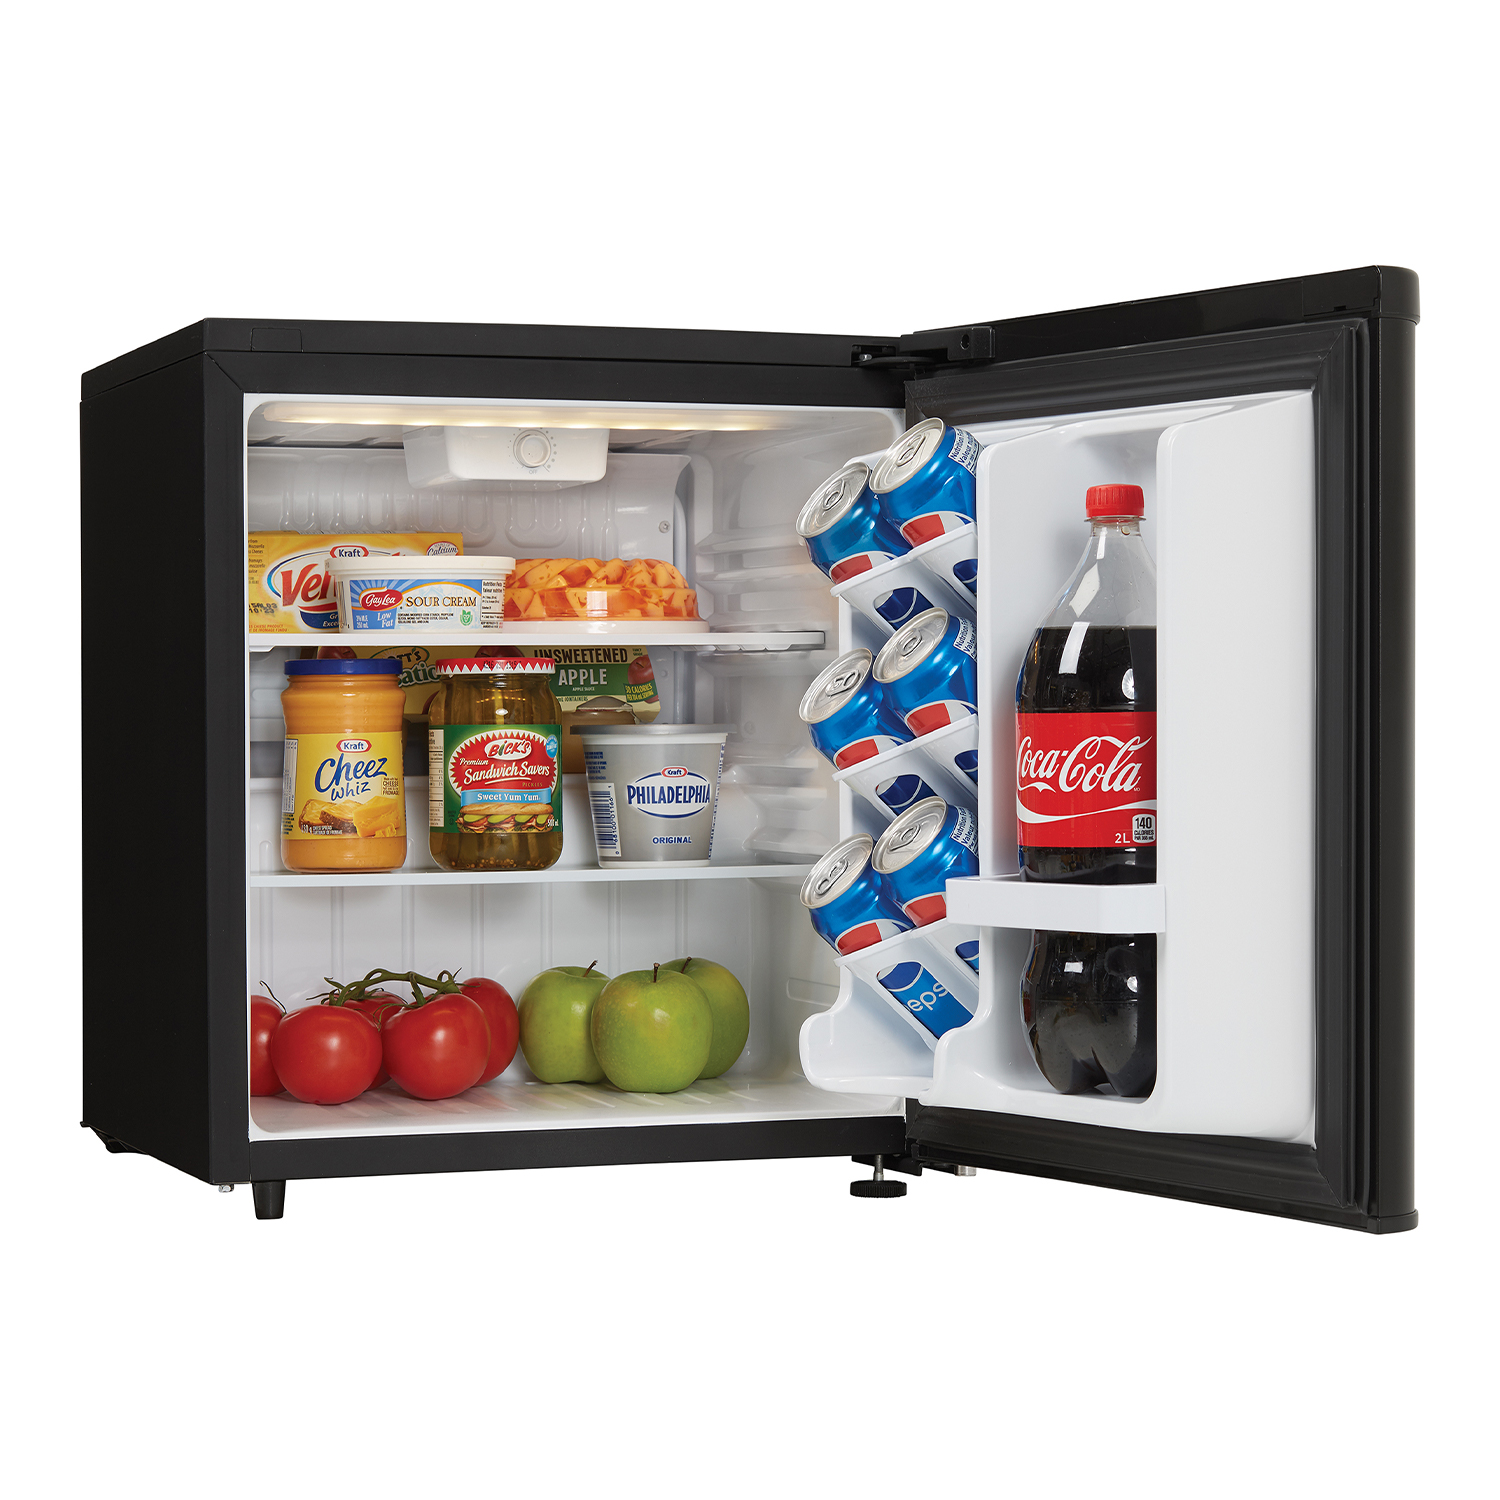 Danby-1-7-Cubic-Foot-Contemporary-Classic-Compact-Refrigerator-Stainless-Finish thumbnail 4